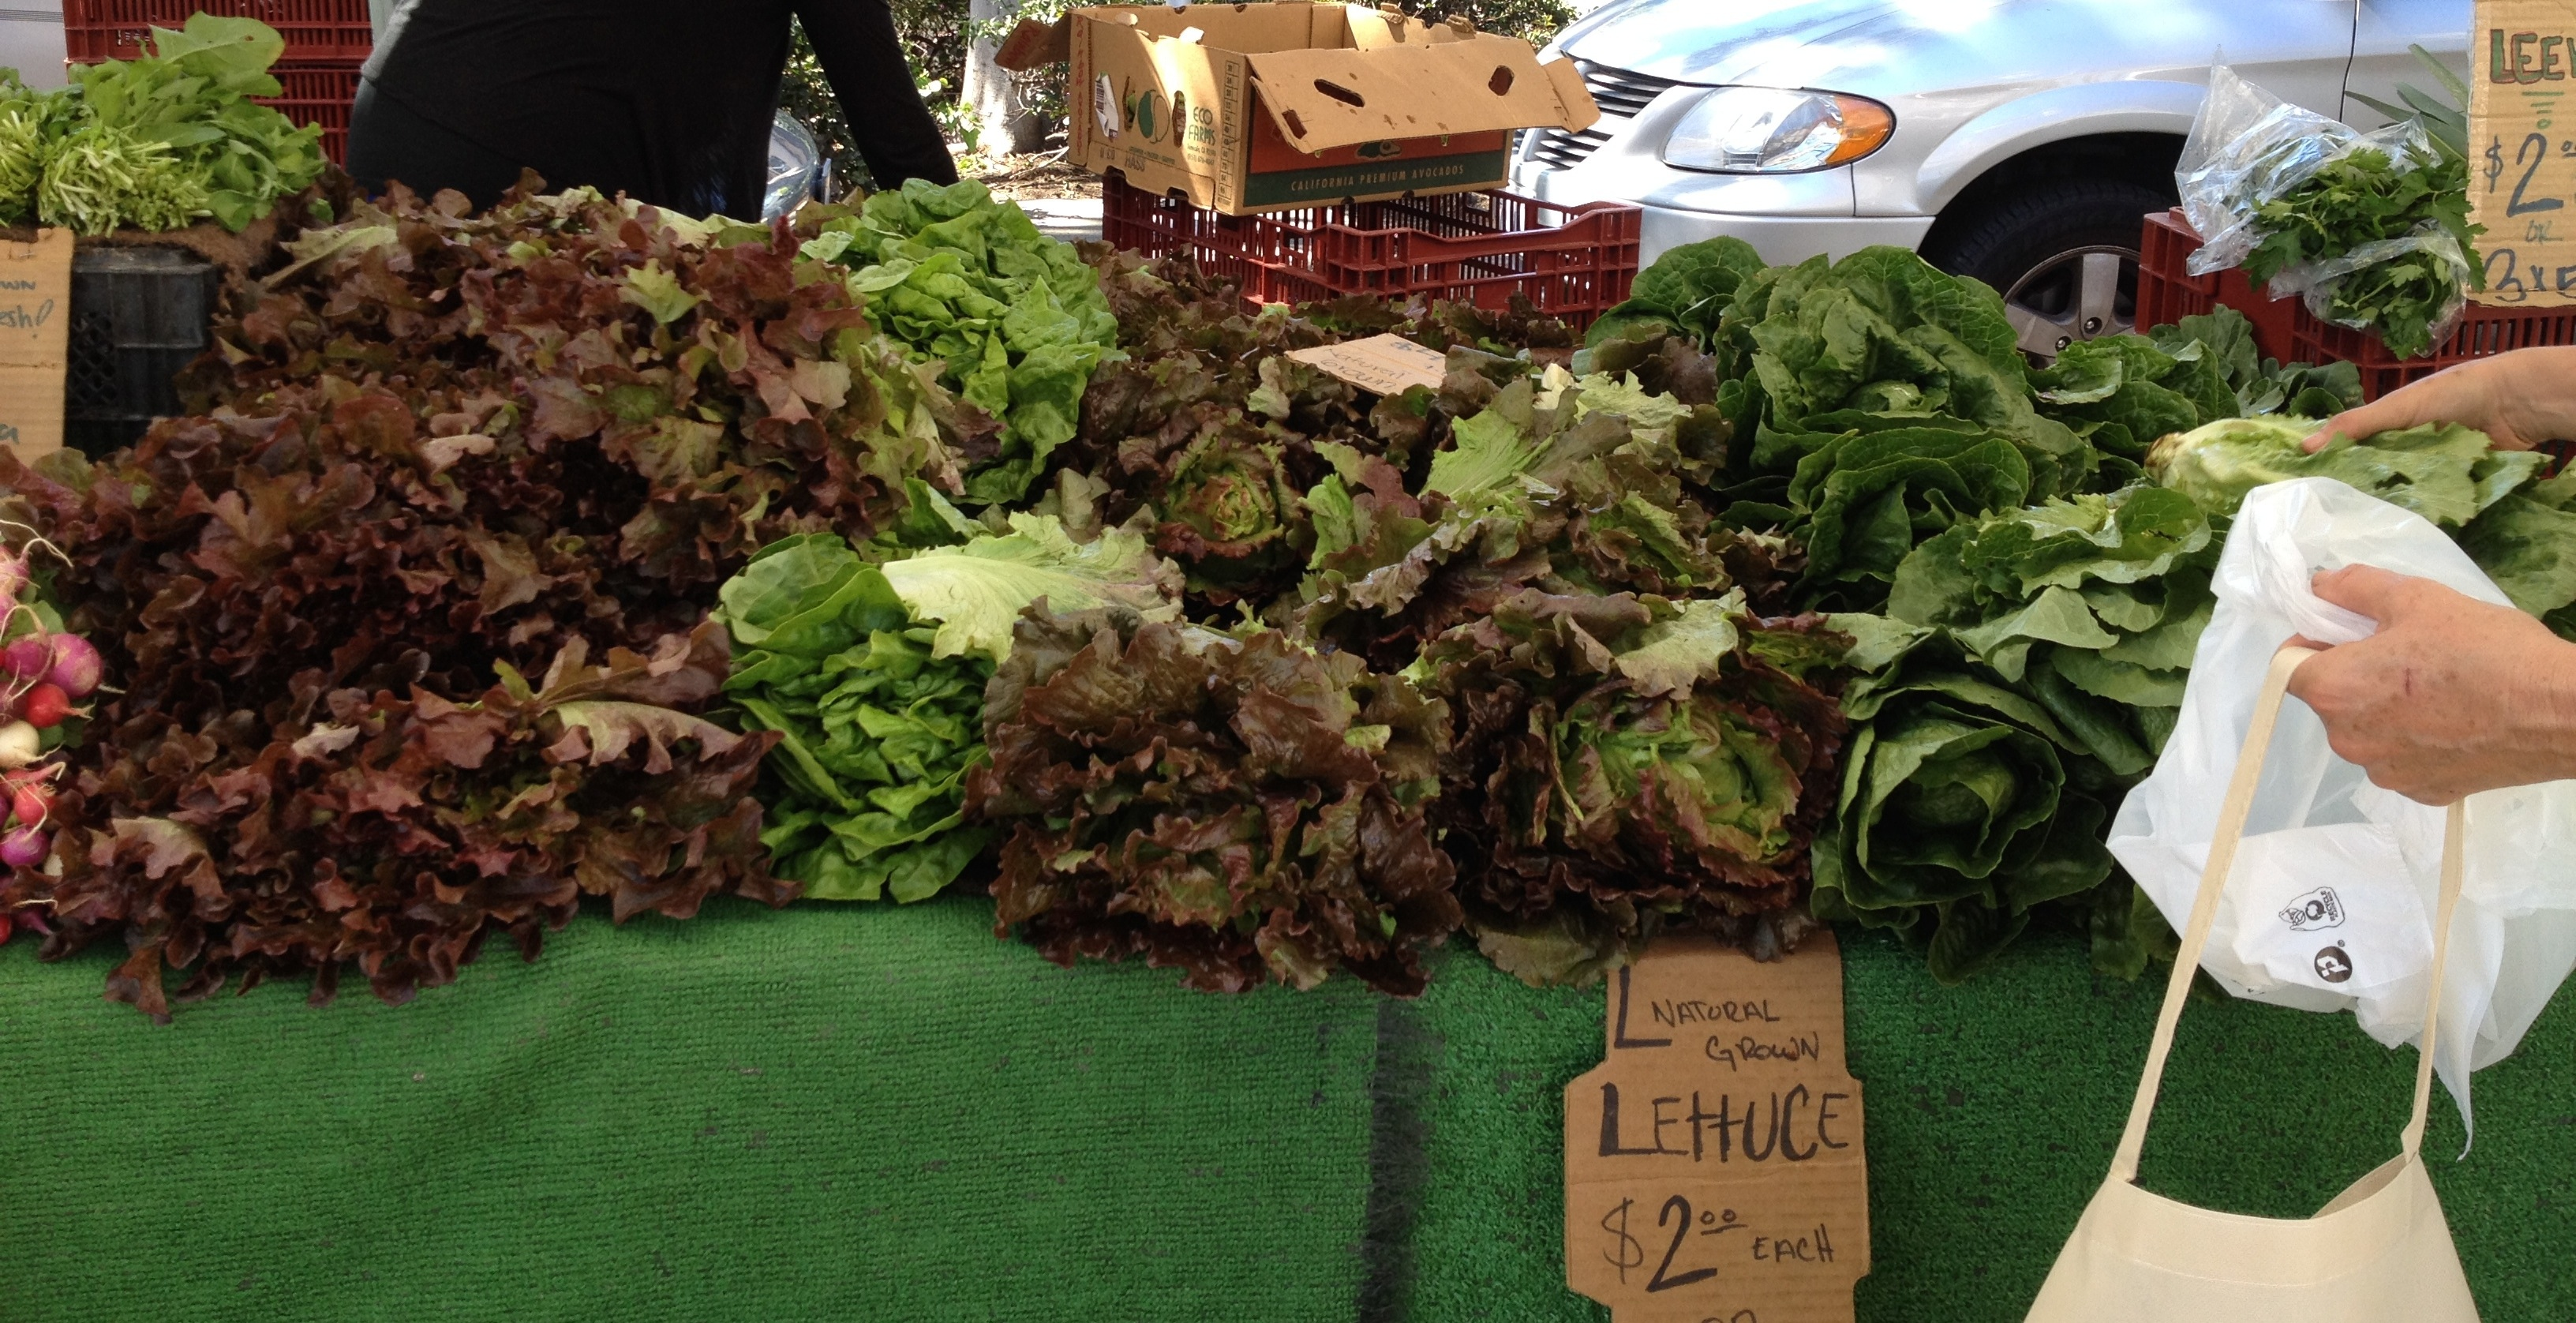 California lettuces at a farmers market